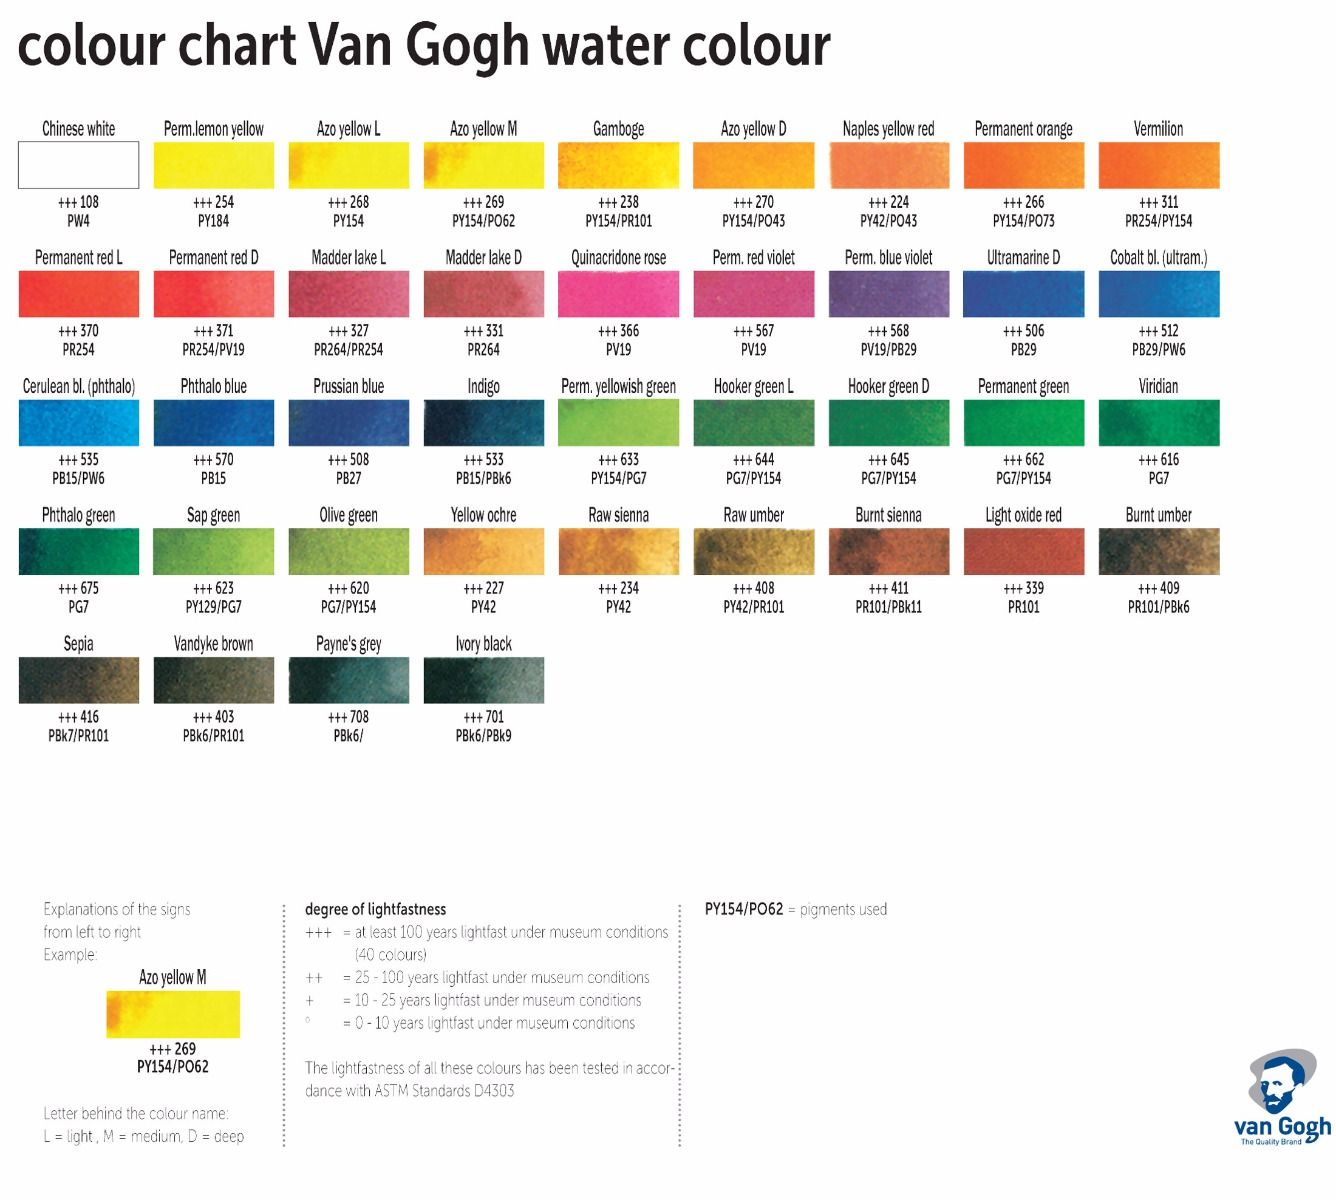 Van Gogh Watercolour Paint Colour Chart Van Gogh Watercolor